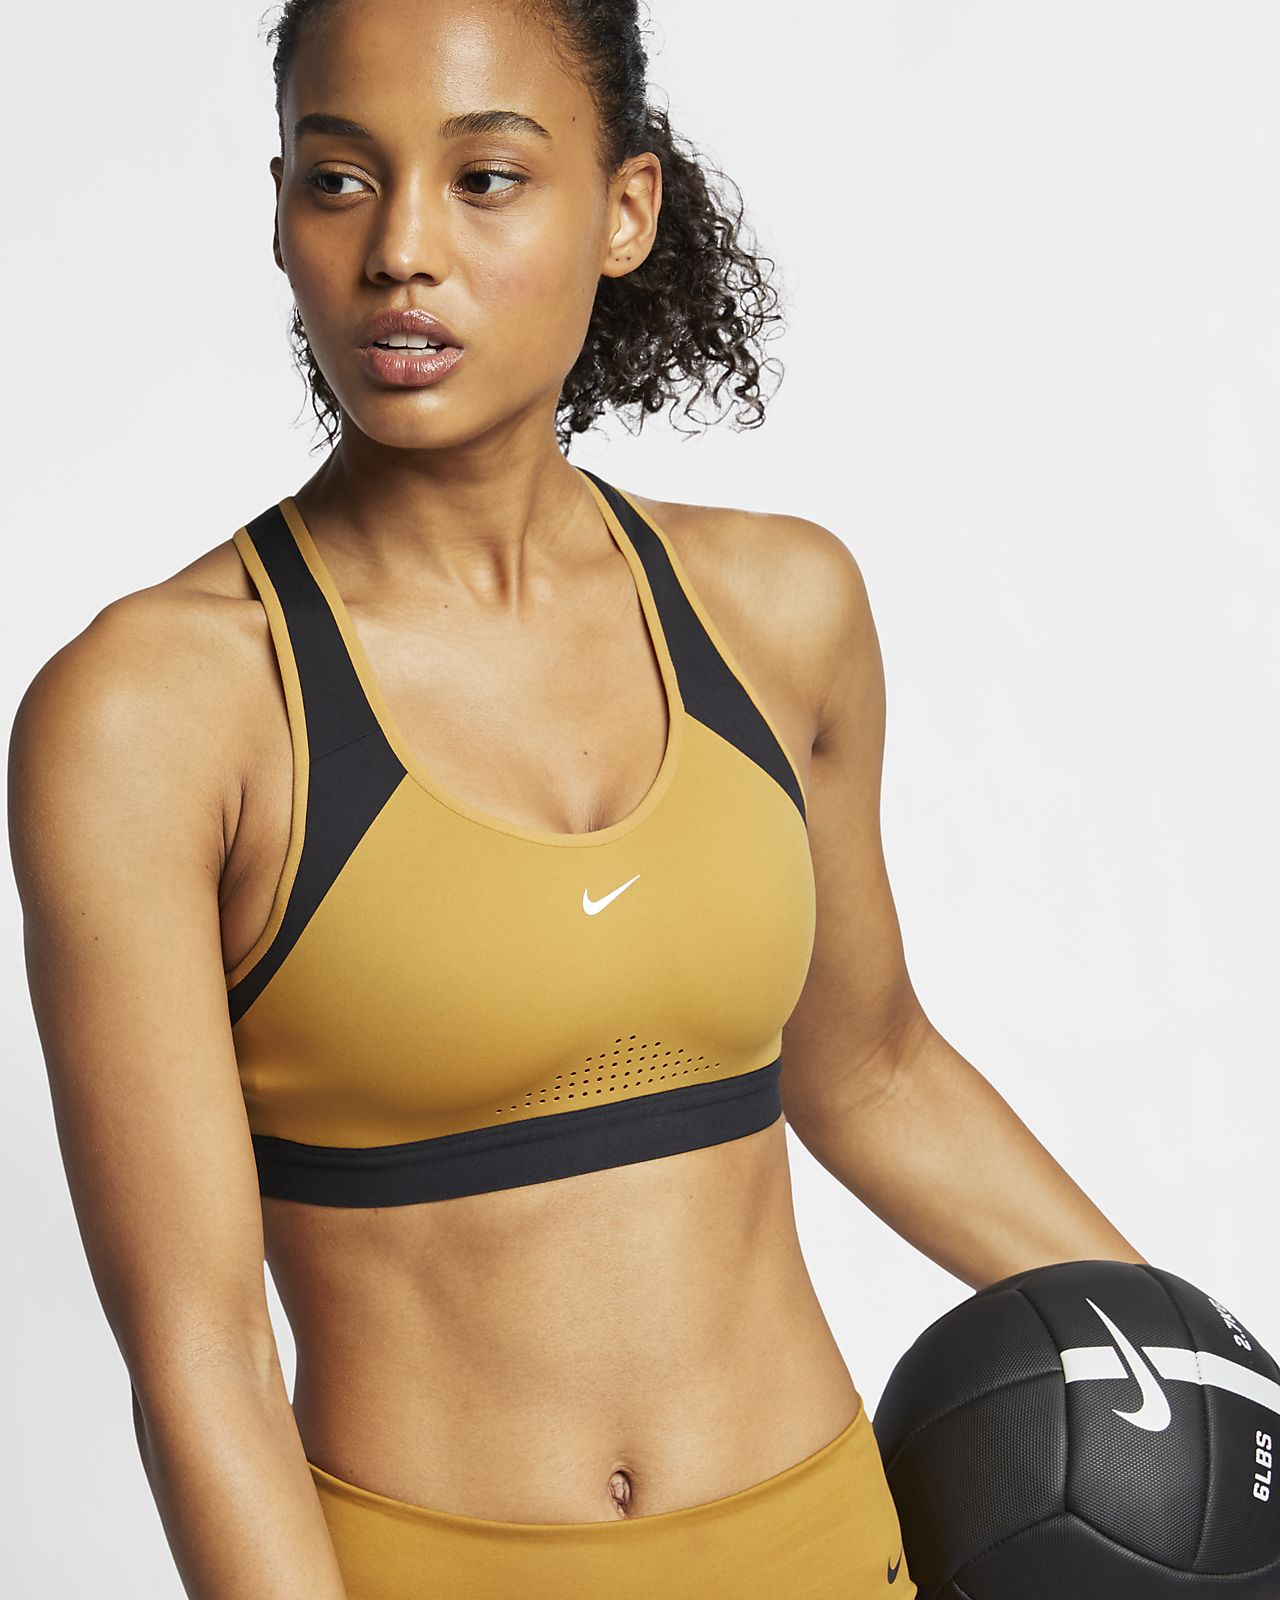 558dbc96f02 Nike Motion Adapt Women s Sports Bra. Nike.com